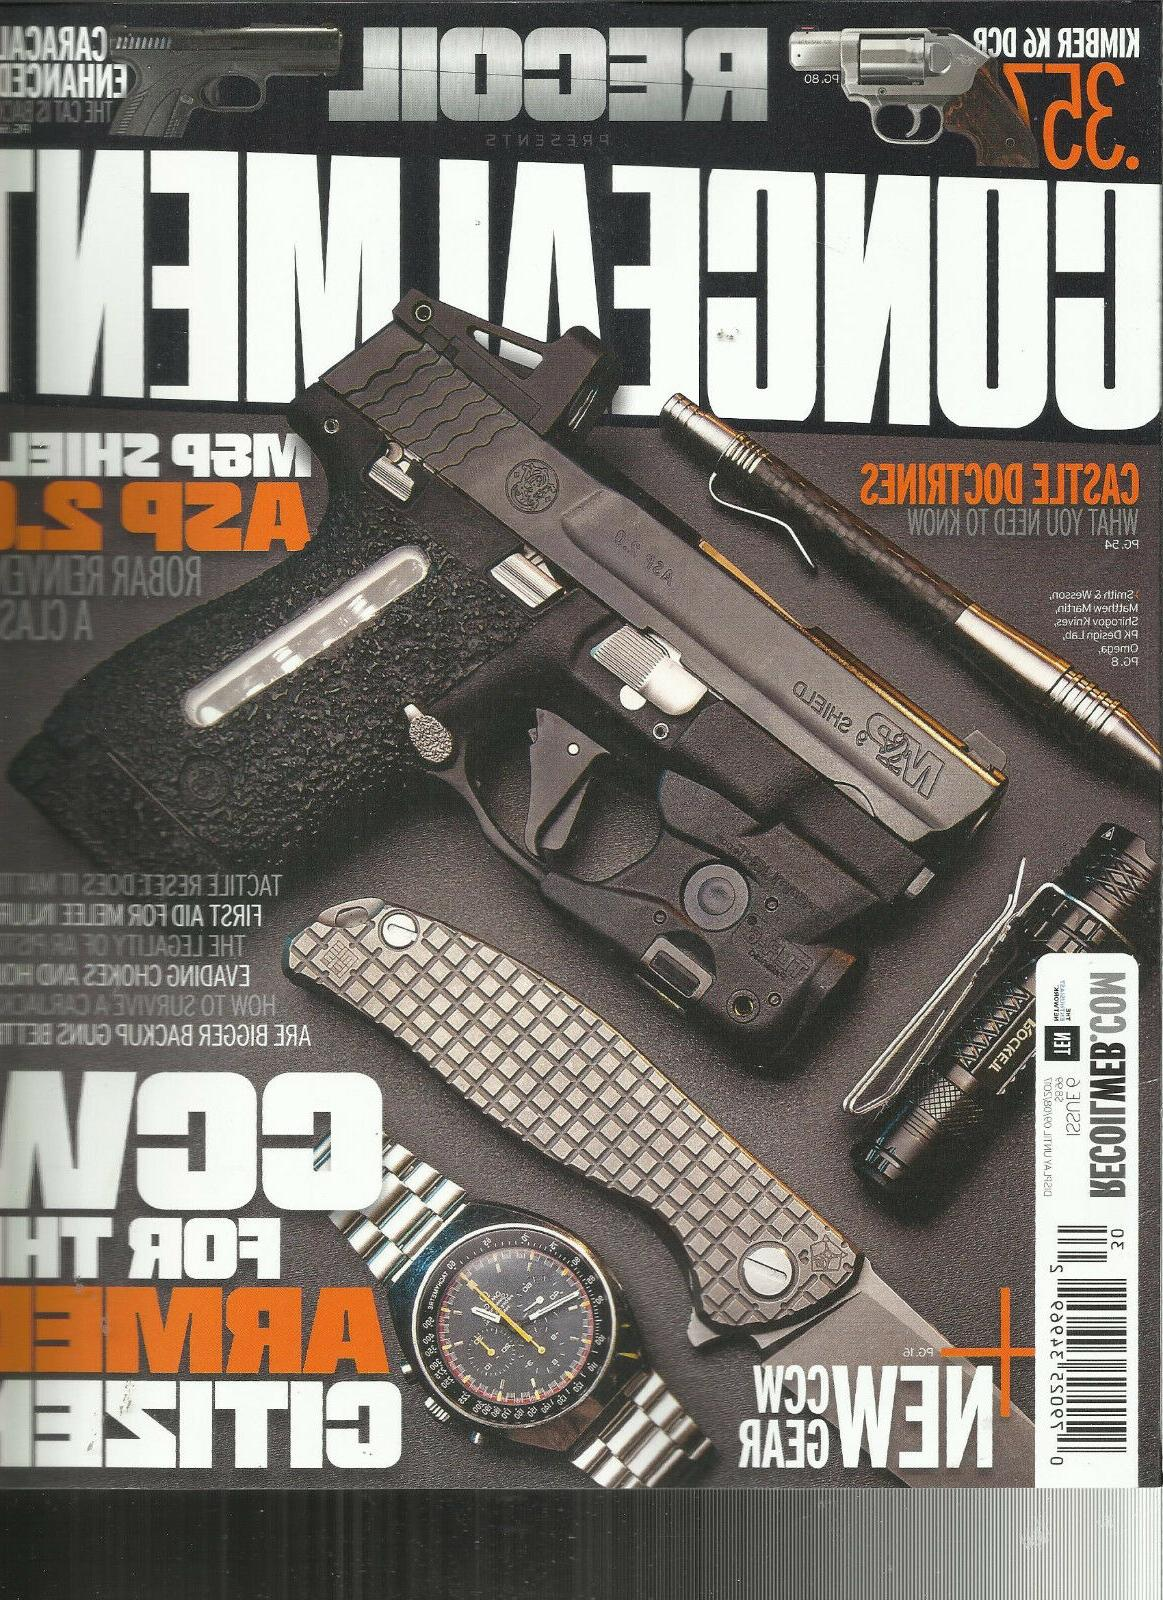 recoil concealment magazine 2017 issue 6 display